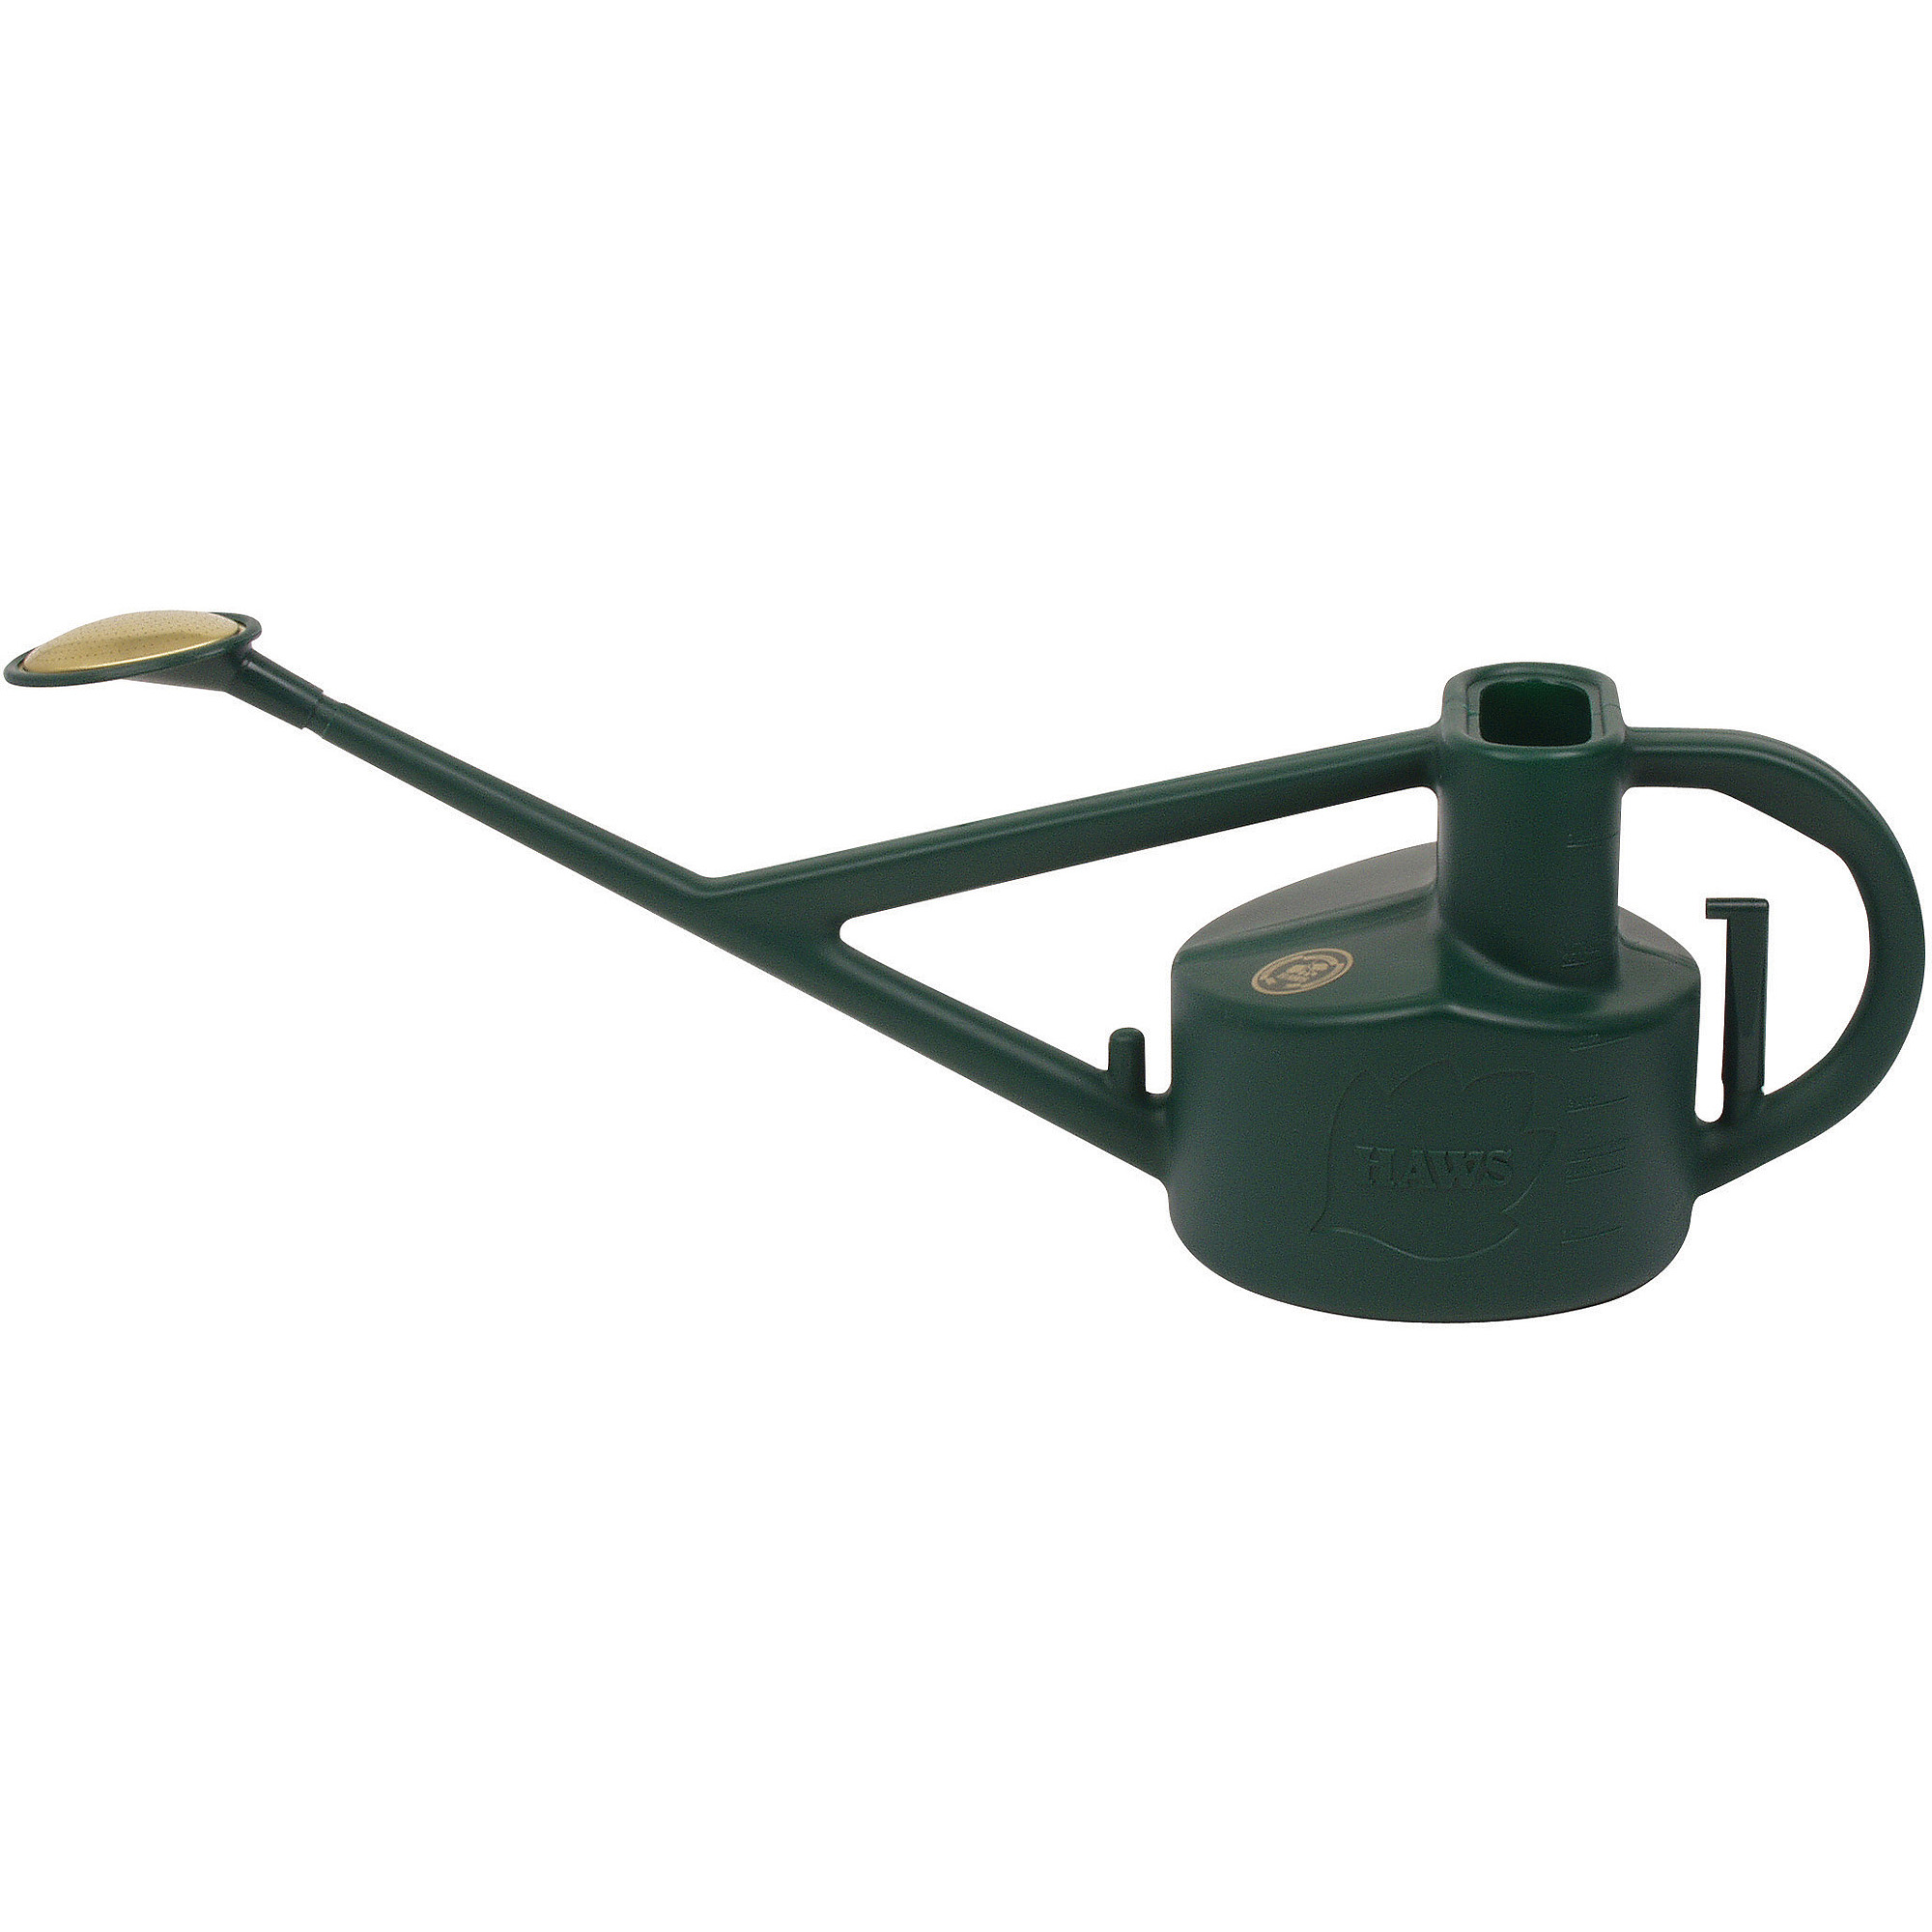 Haws Longreach 1.3 gal Outdoor Plastic Watering Can, Green V115 by Bosmere